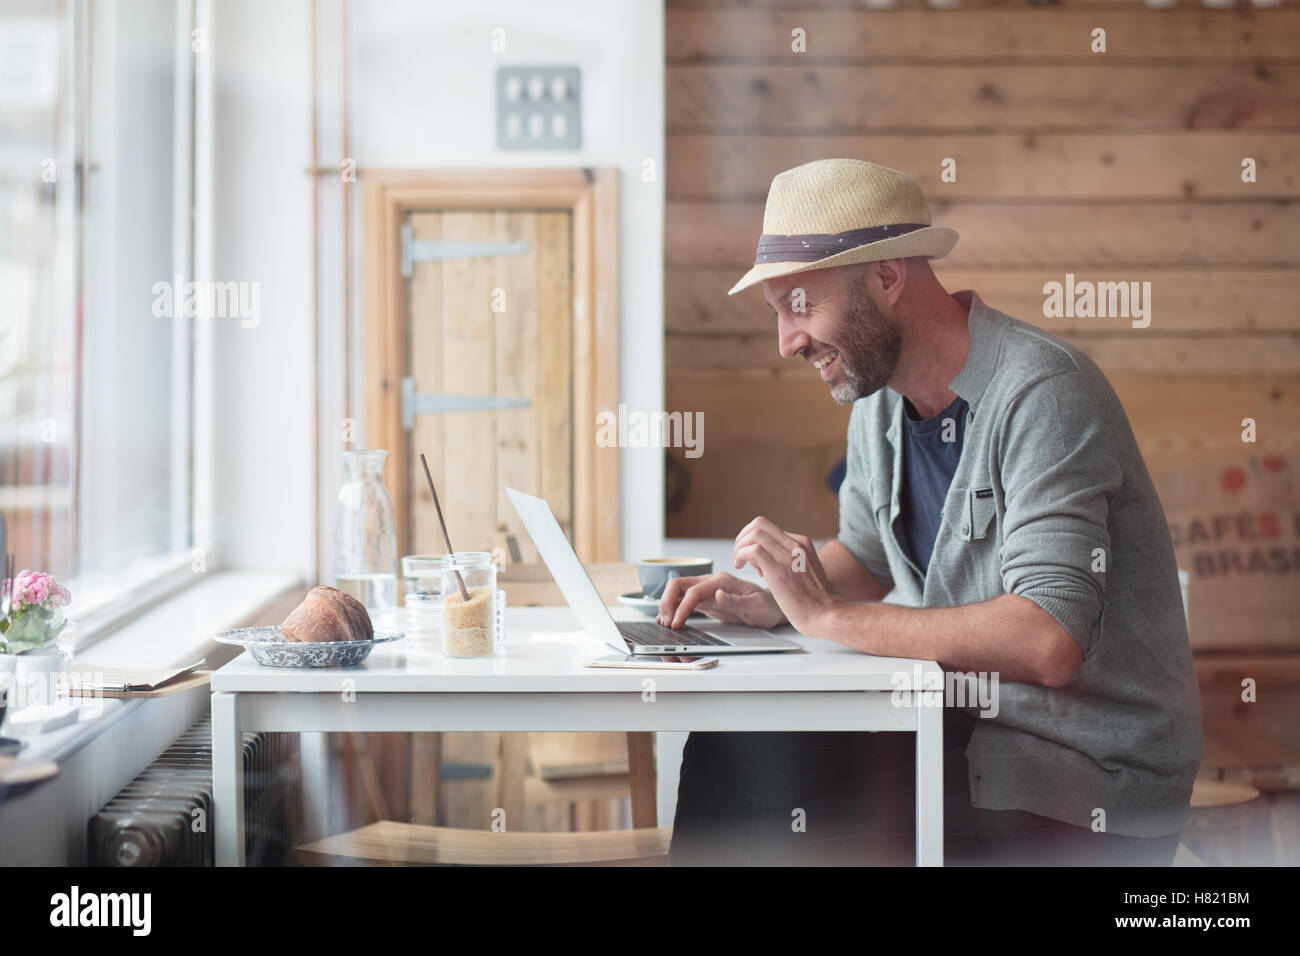 La mi 30s man working at laptop in cafe Photo Stock